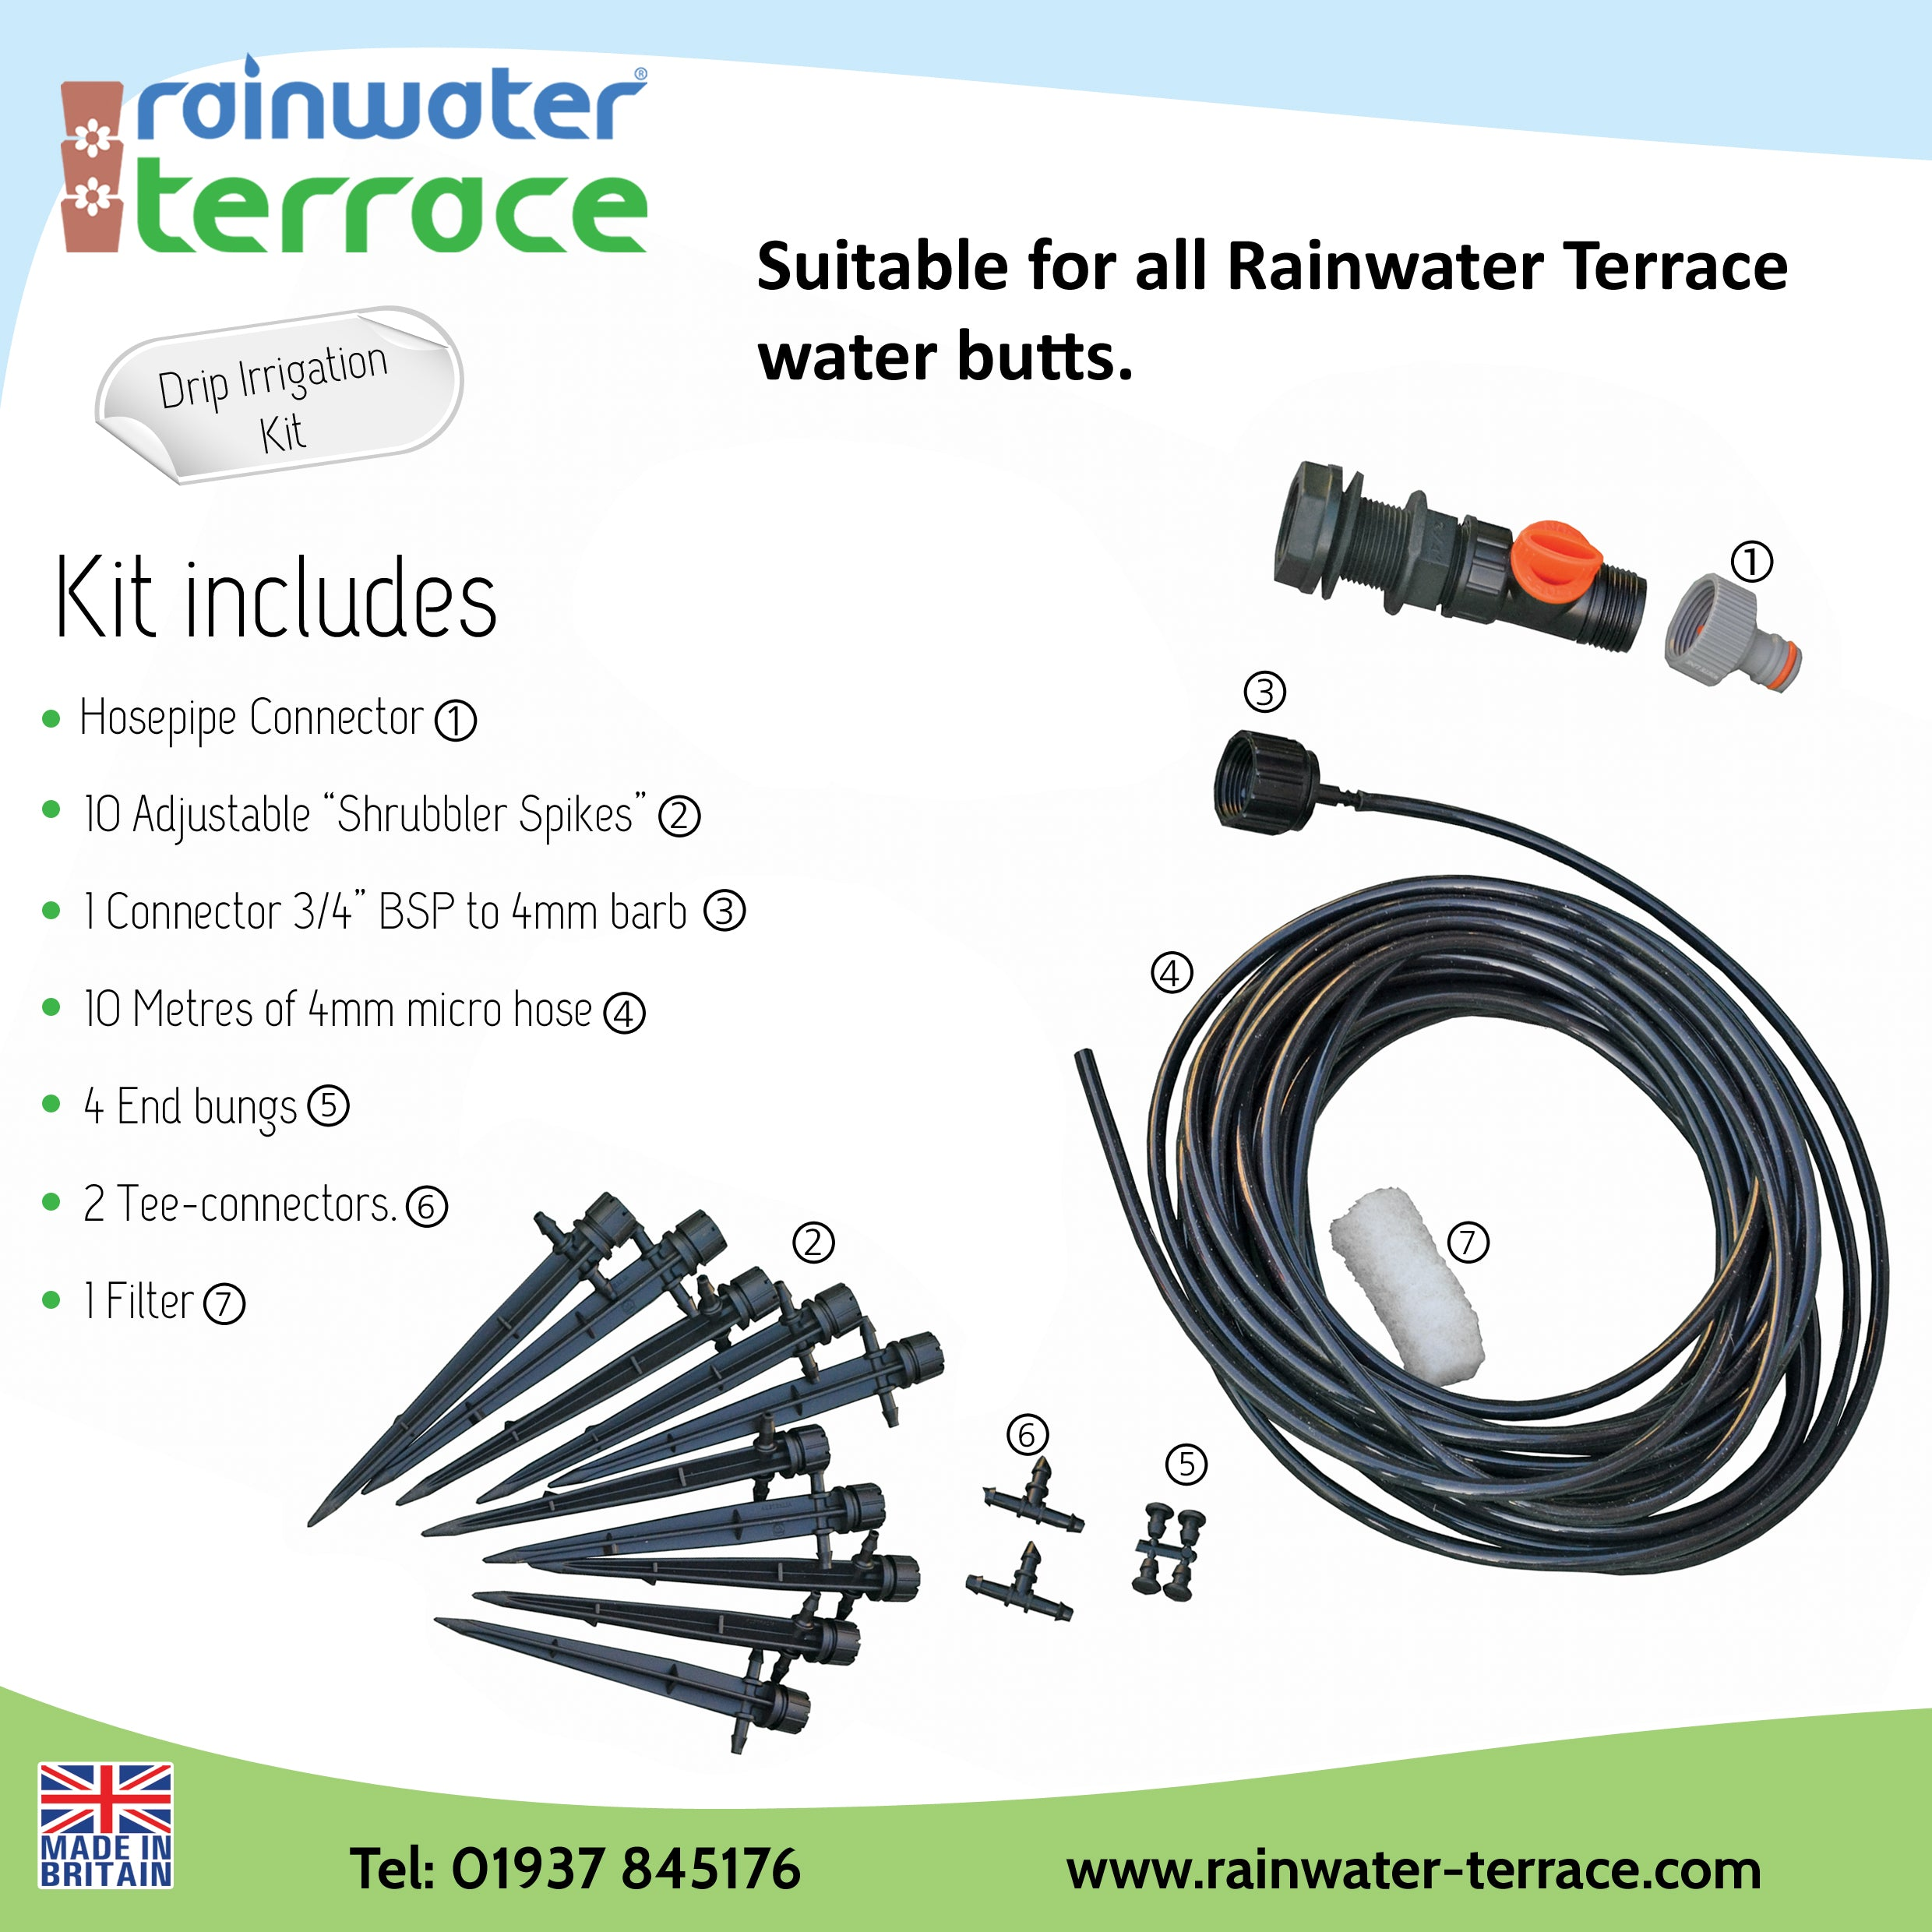 Drip Irrigation Kit For Rainwater Terrace Water Butts